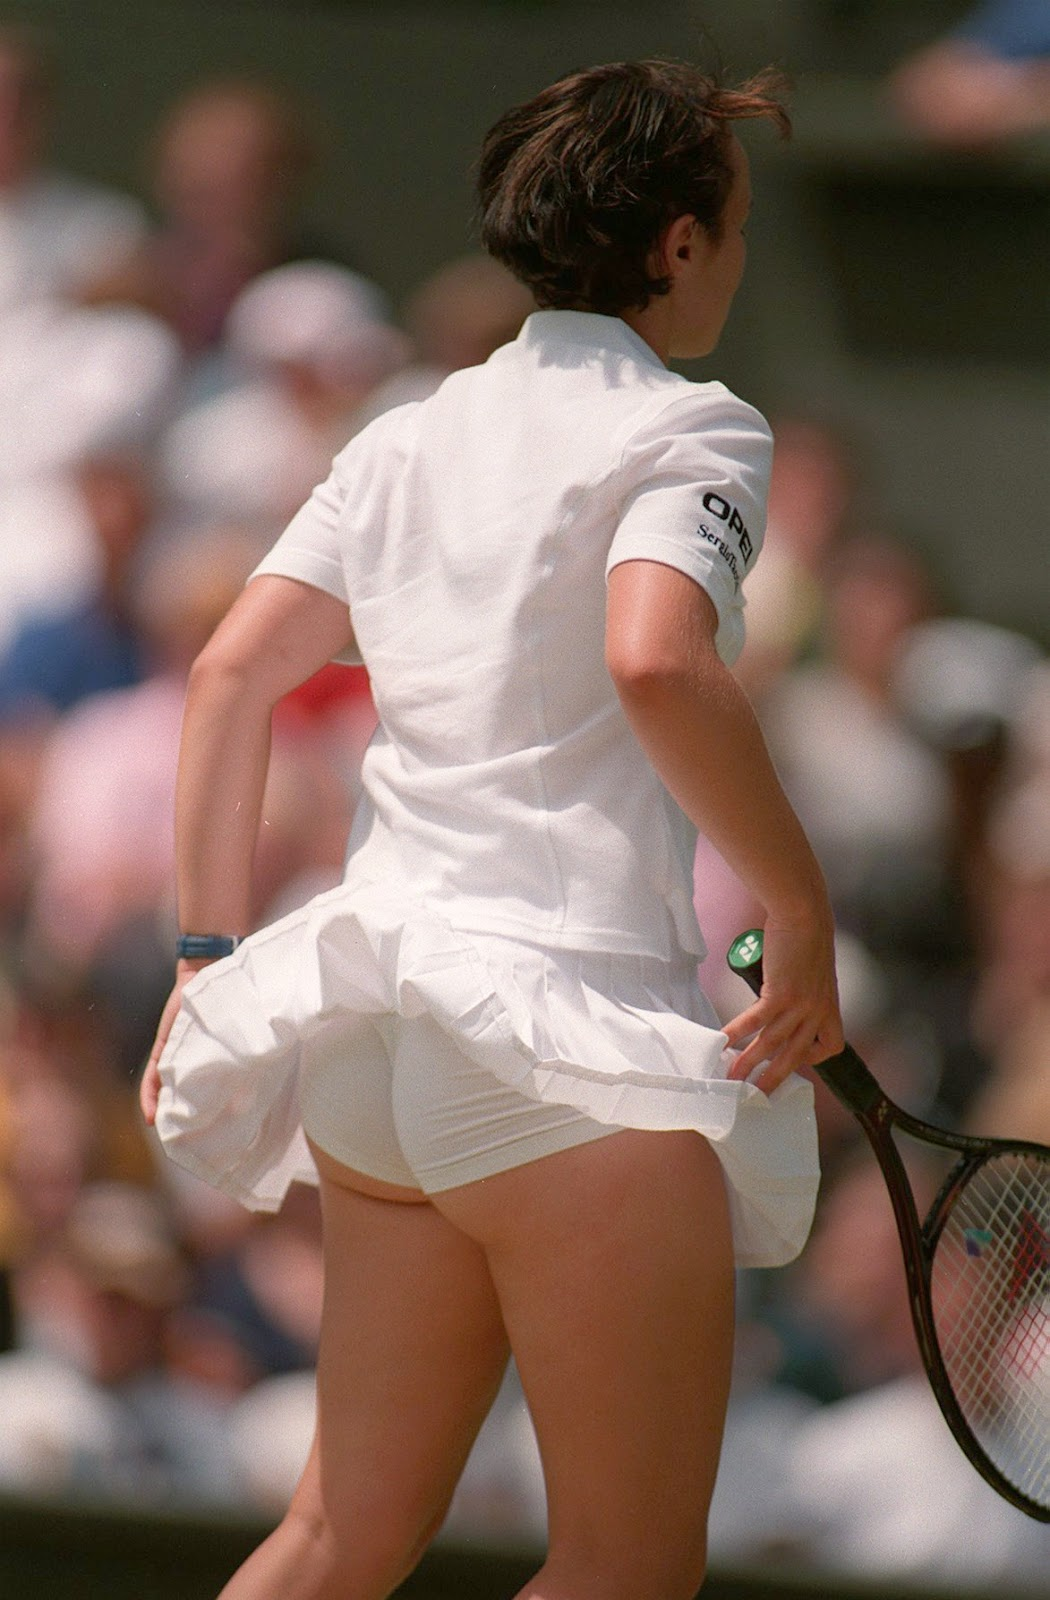 Hingis upskirt photos